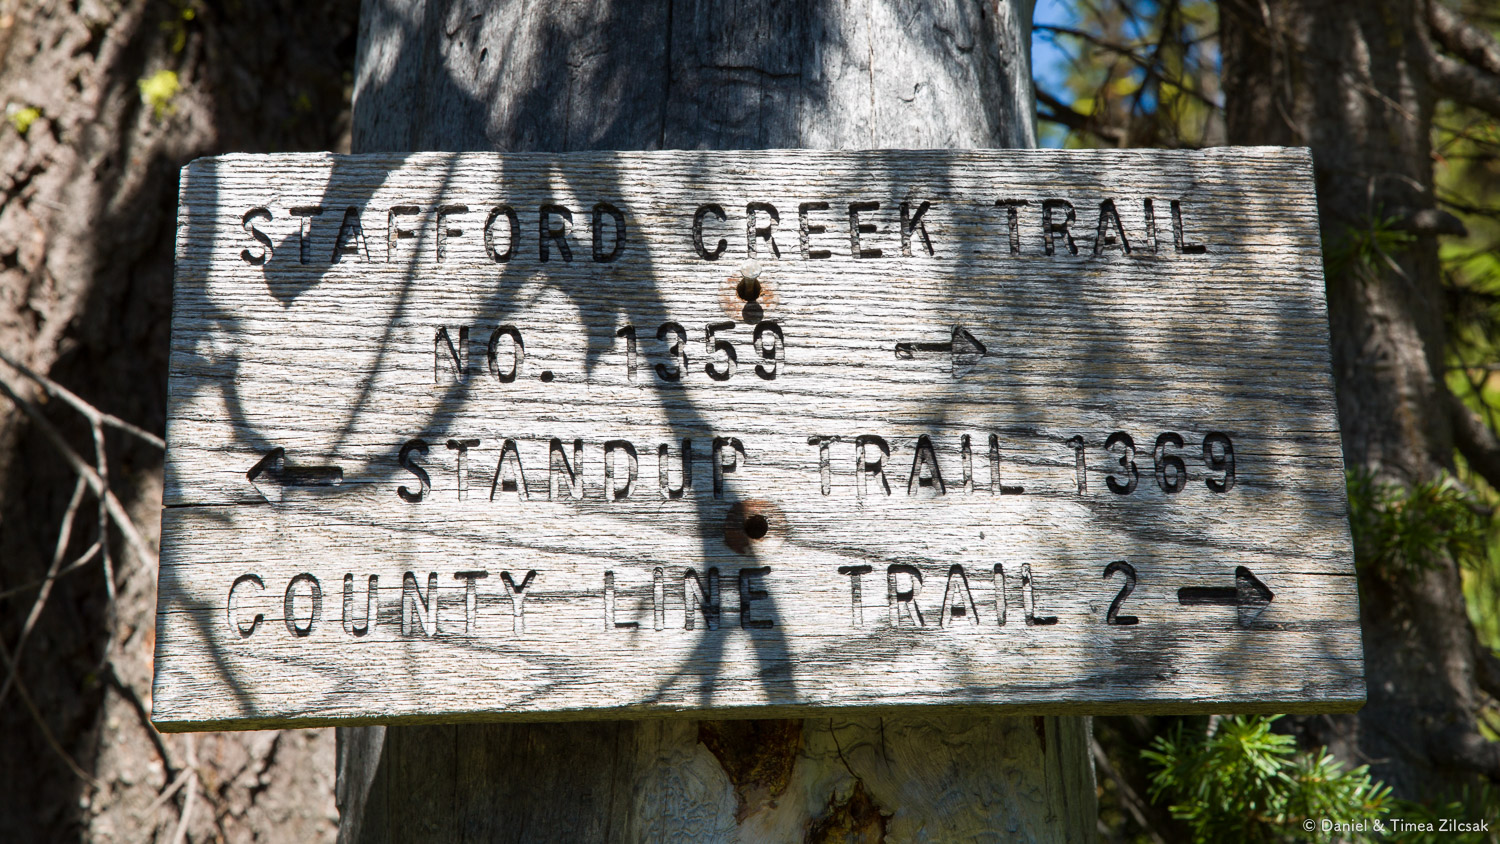 Junction with Standup Creek Trail at 3.8 miles